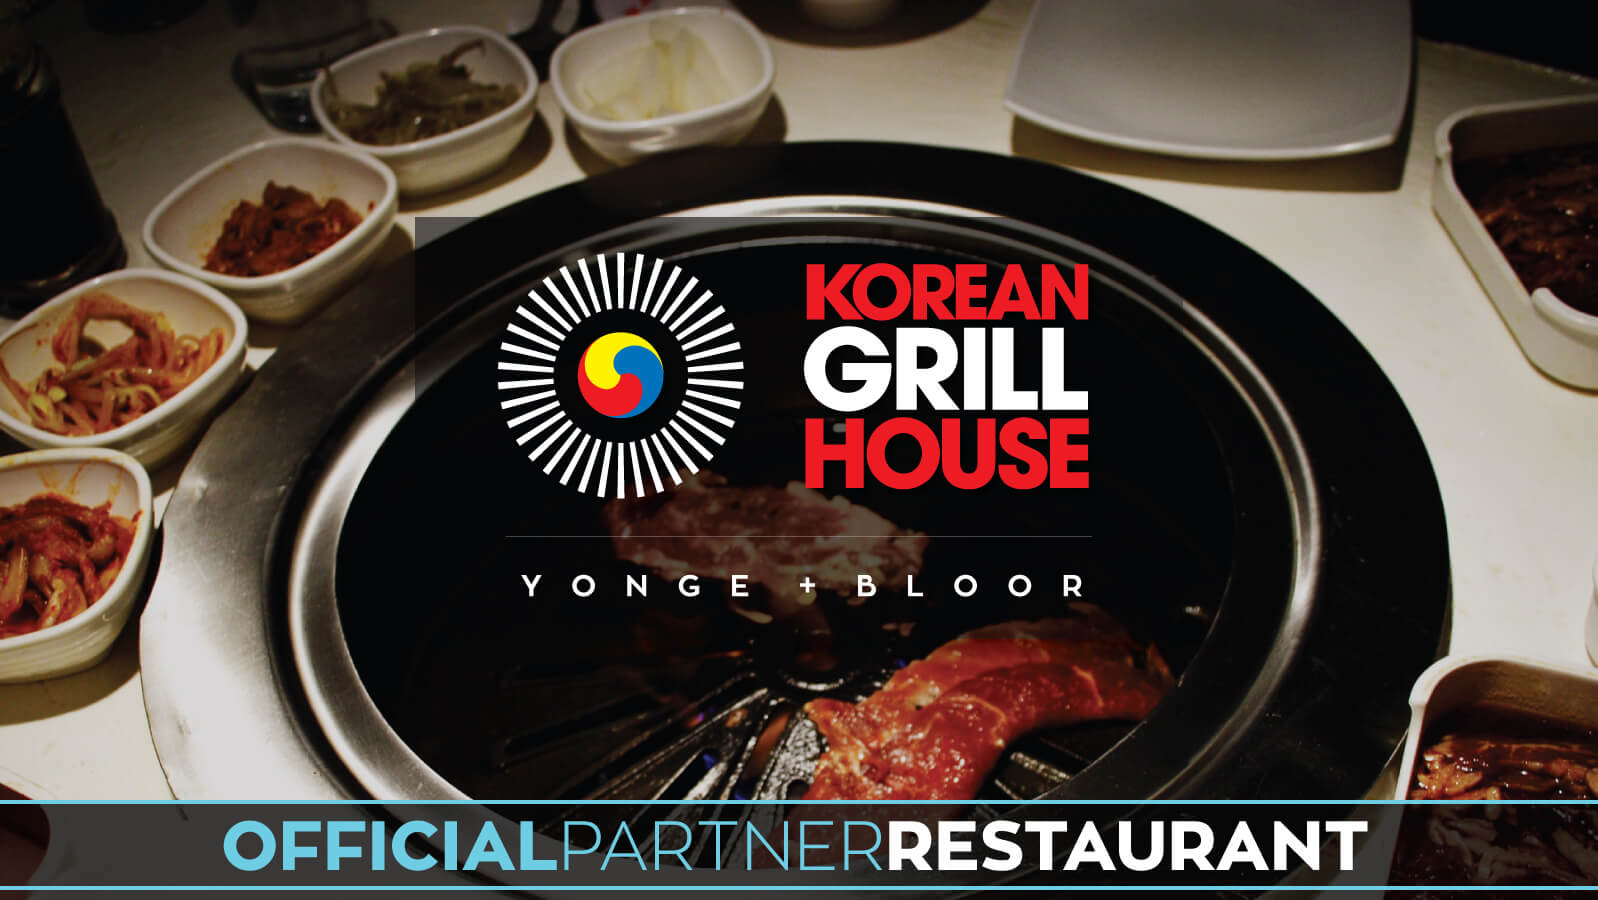 Korean Grill House Yonge and BLoor